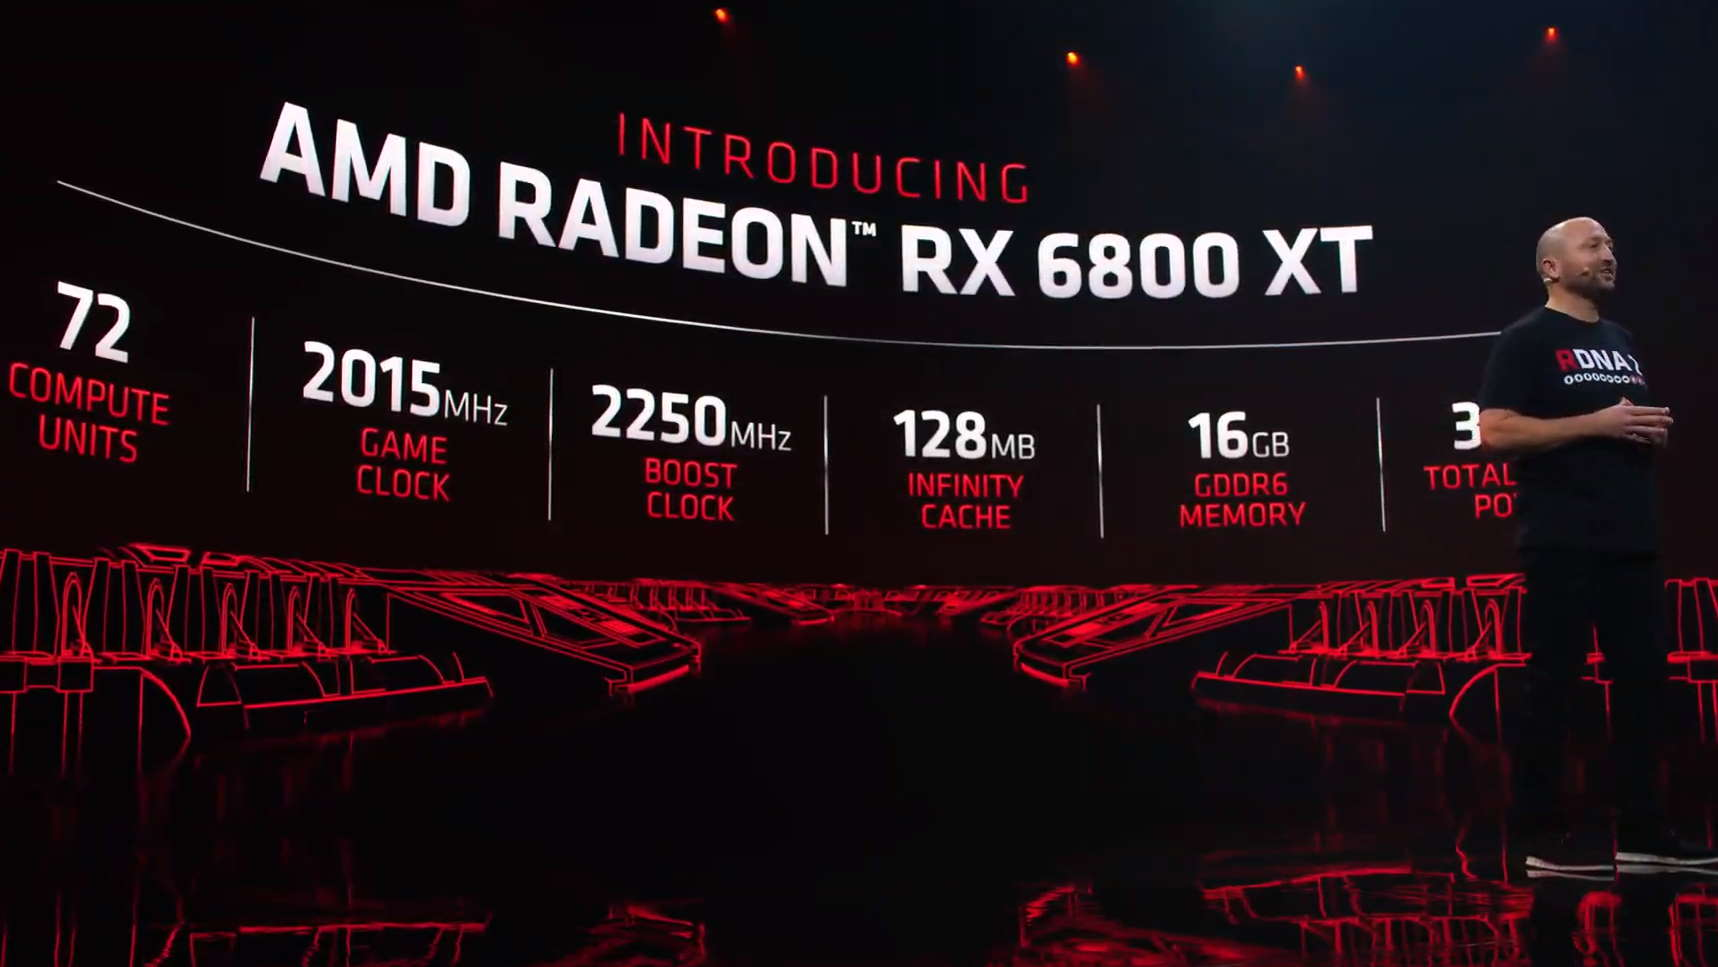 AMD announces Radeon RX 6800 XT graphics card, available for $649